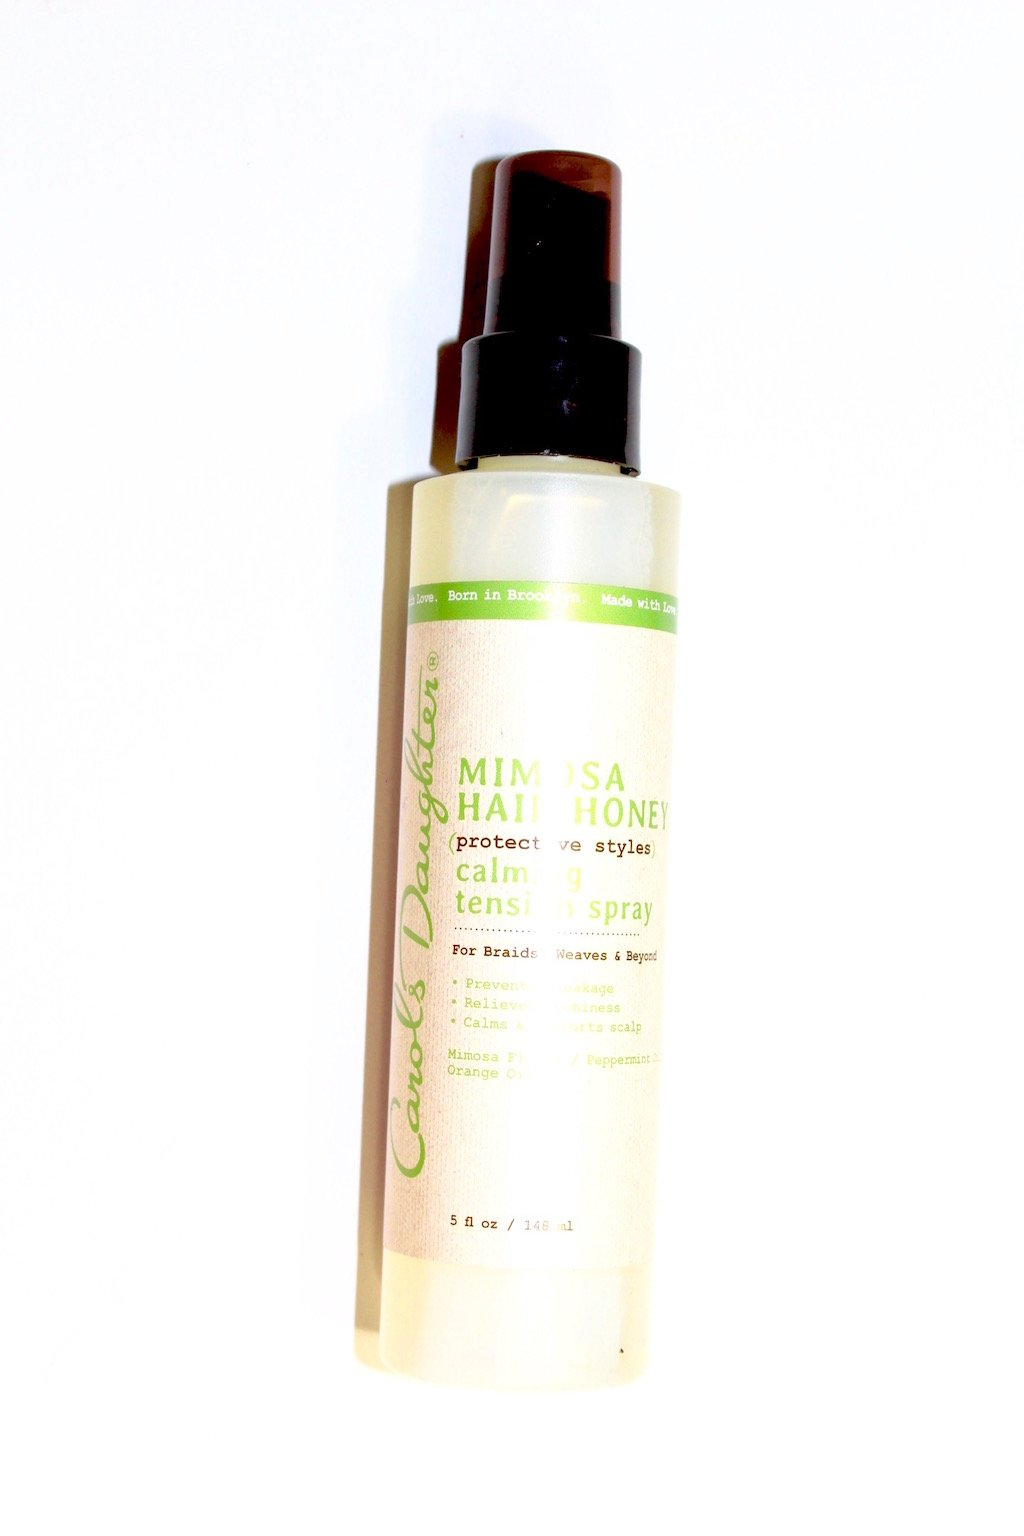 Carol's Daughter Mimosa Hair Honey Calming Tension Spray